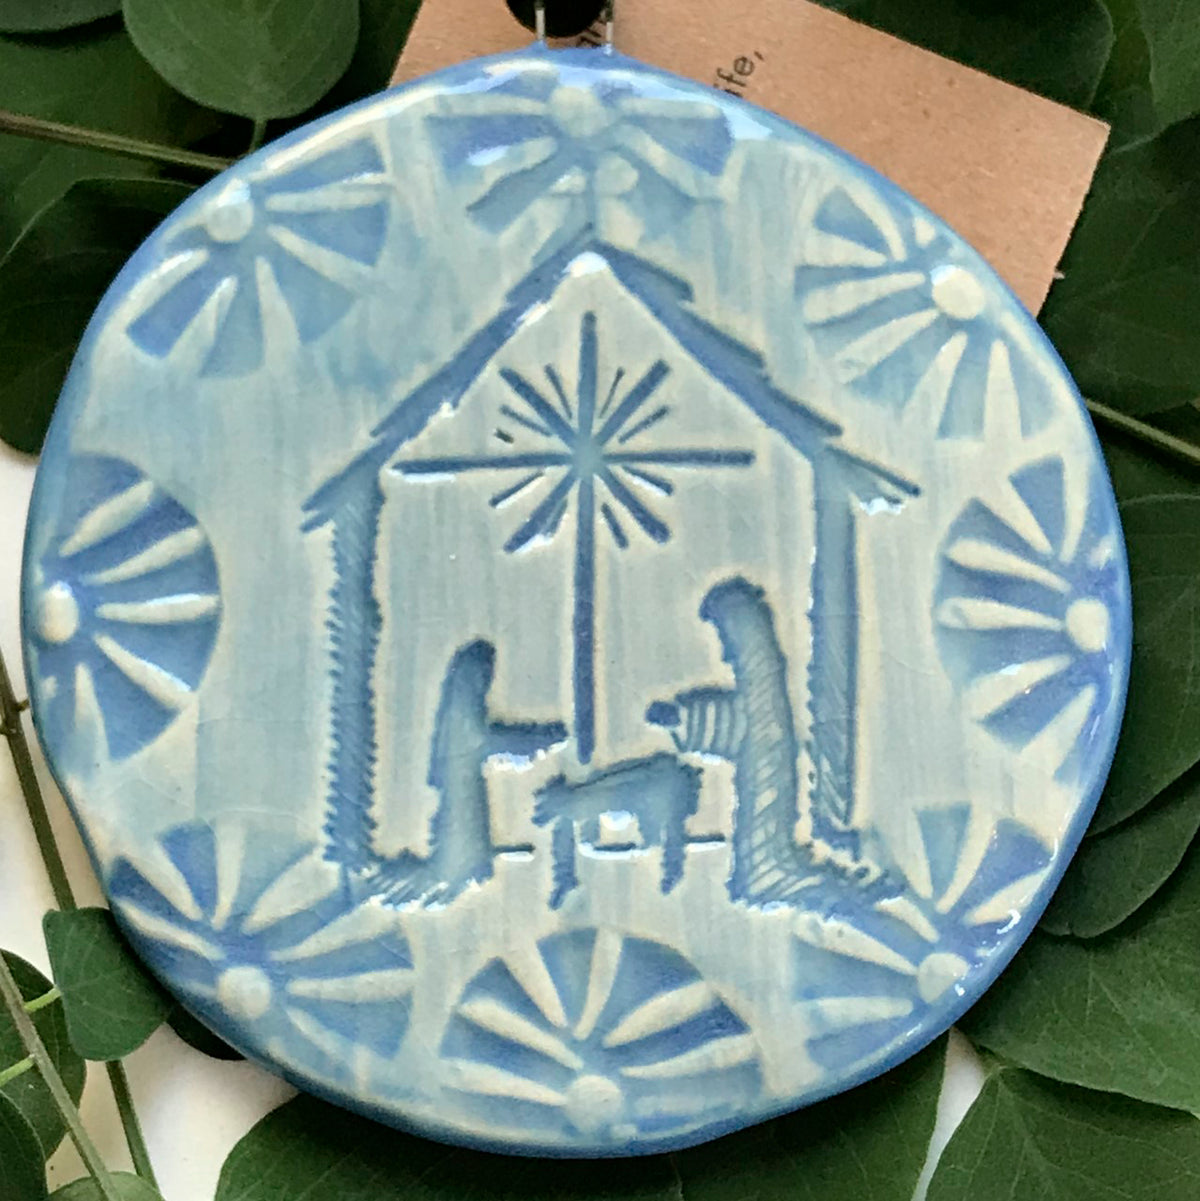 A traditional nativity scene handcrafted Christmas ornament glazed in a soft blue grey.